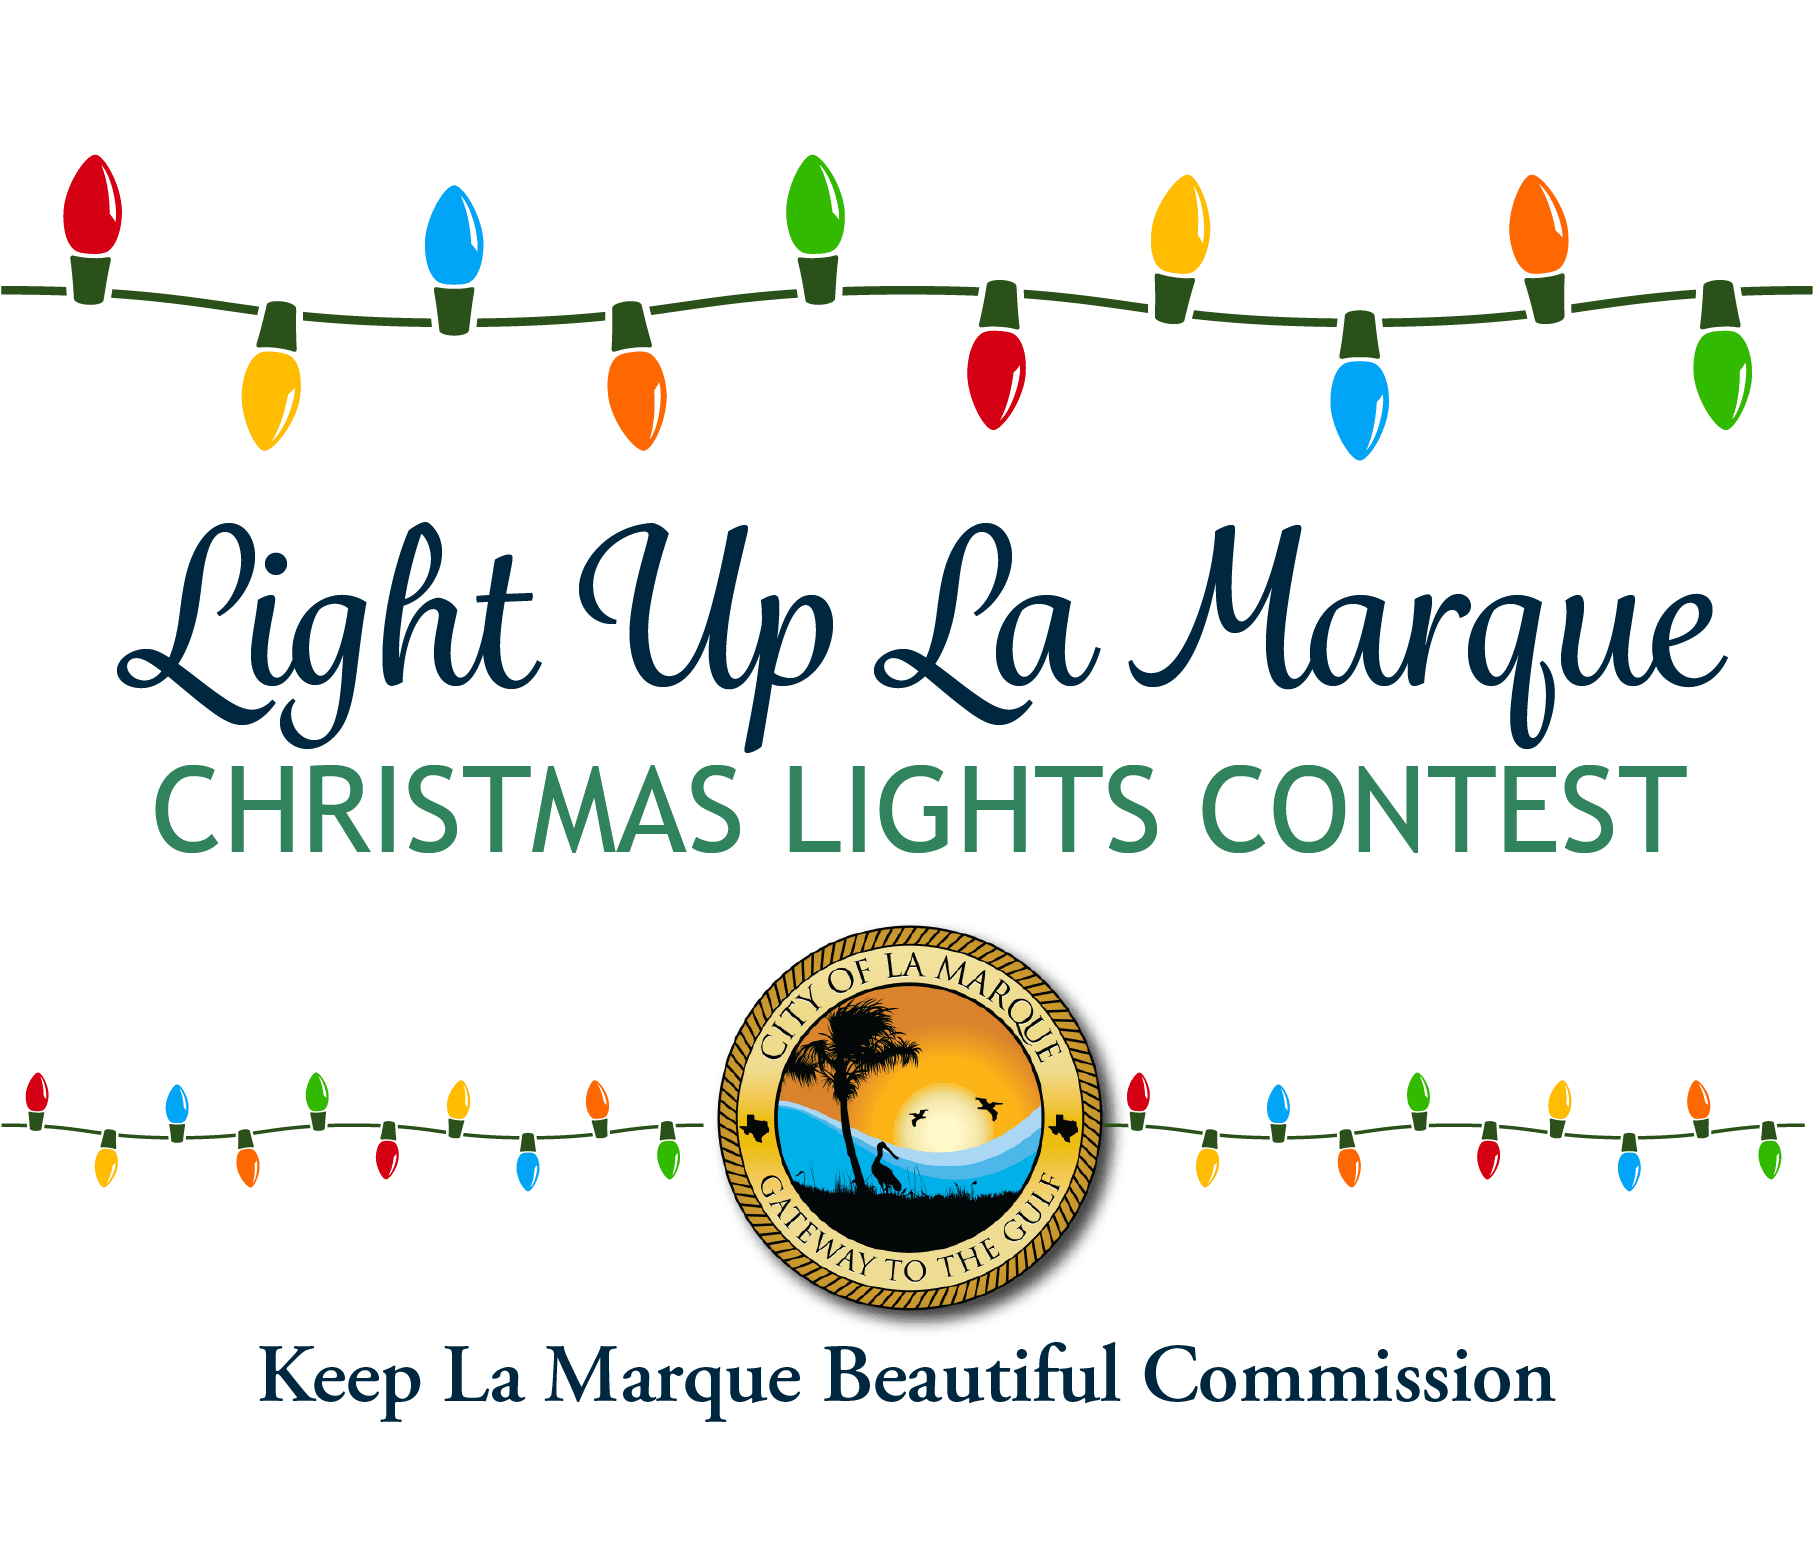 Light Up La Marque graphic with city logo and multi-colored Christmas lights